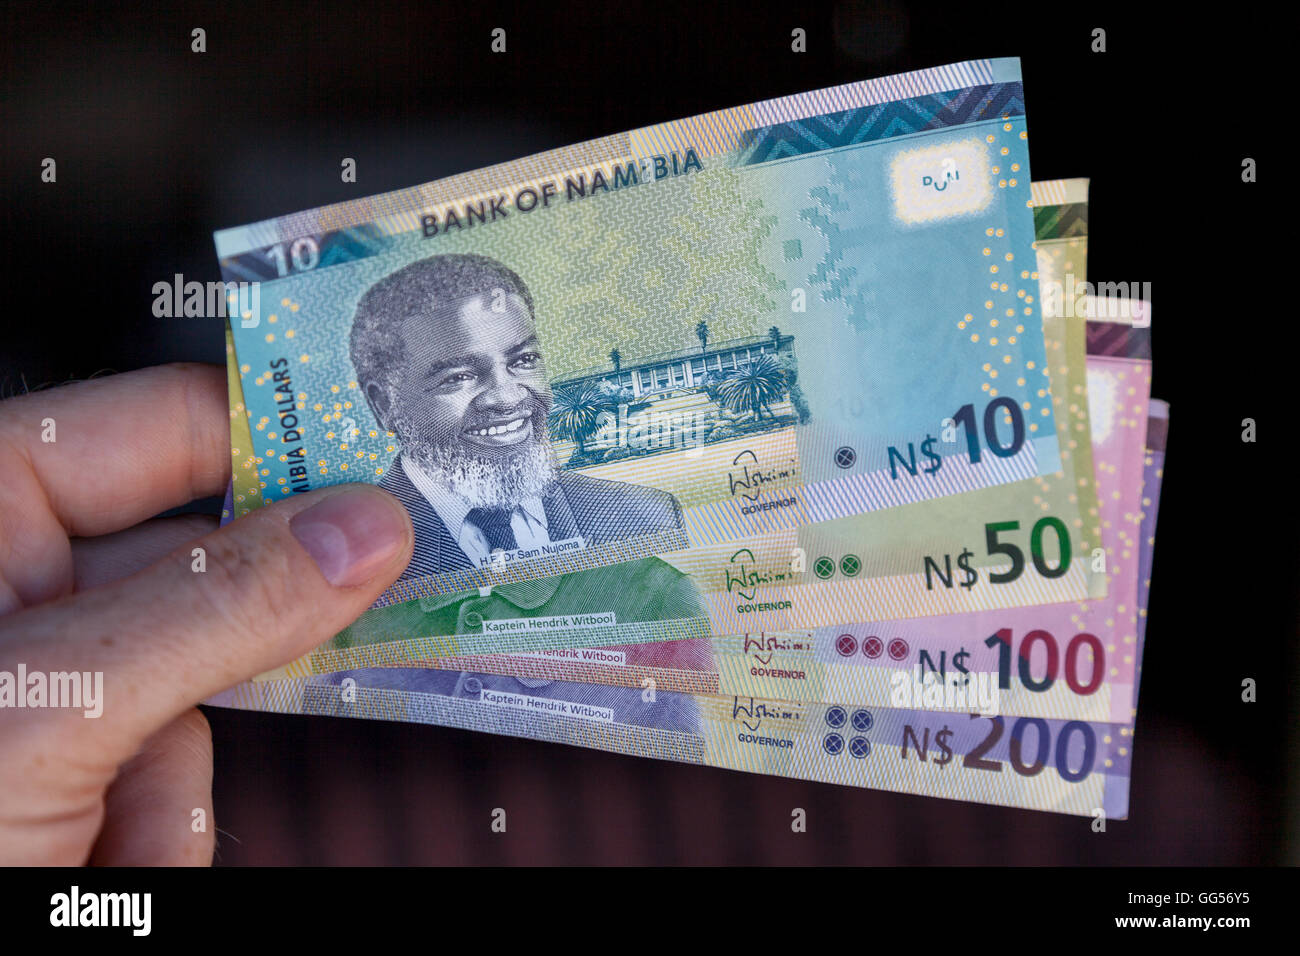 Namibia Namibian dollar currency. N$10 bill depicting Sam Nujoma, the first president of independent Namibia. - Stock Image